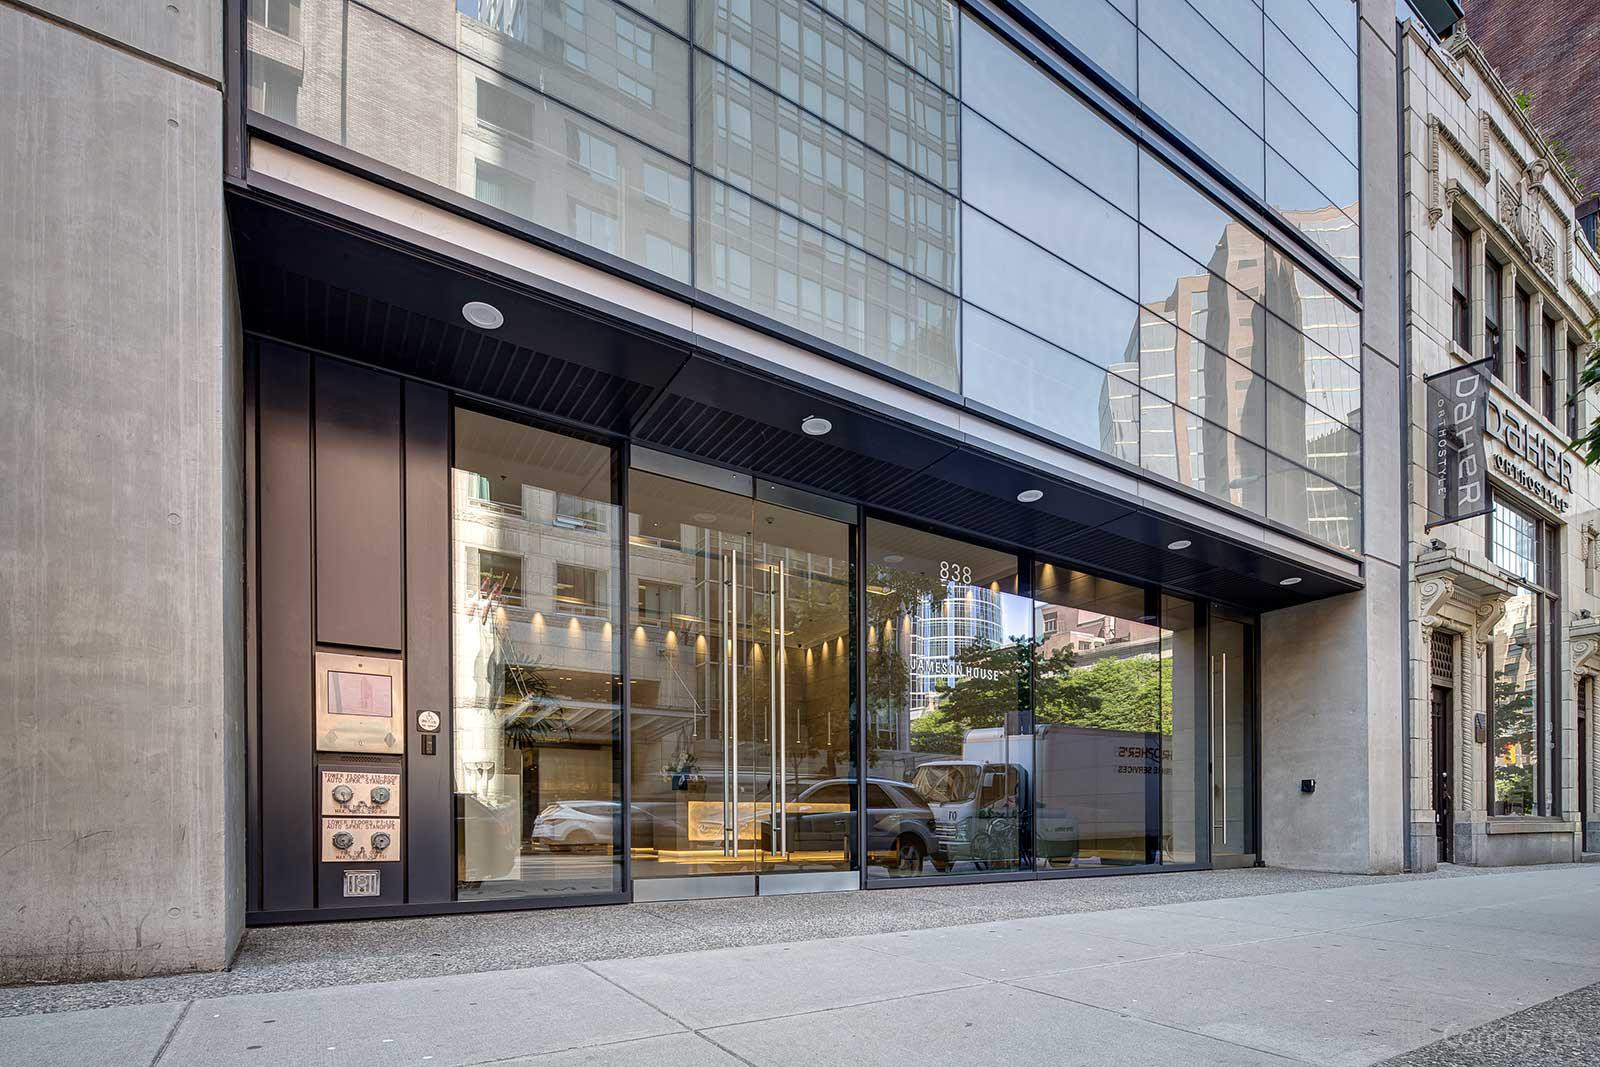 Jameson House at 838 W Hastings St, Vancouver 1